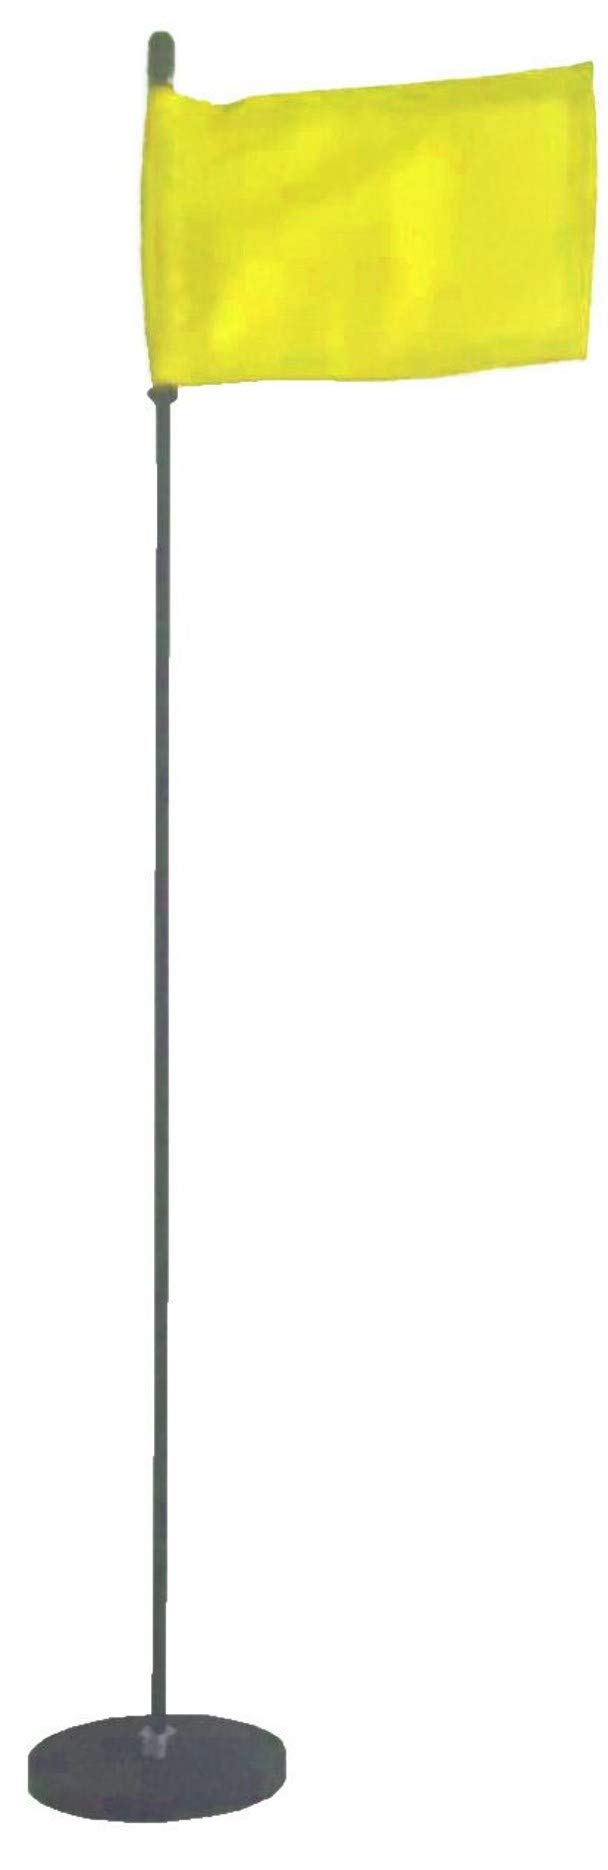 Magnetic Base Flag Holder - Hold Force 44 lbs. Flex Steel Spring Pole 16 inch (4 x 6) Yellow Flag